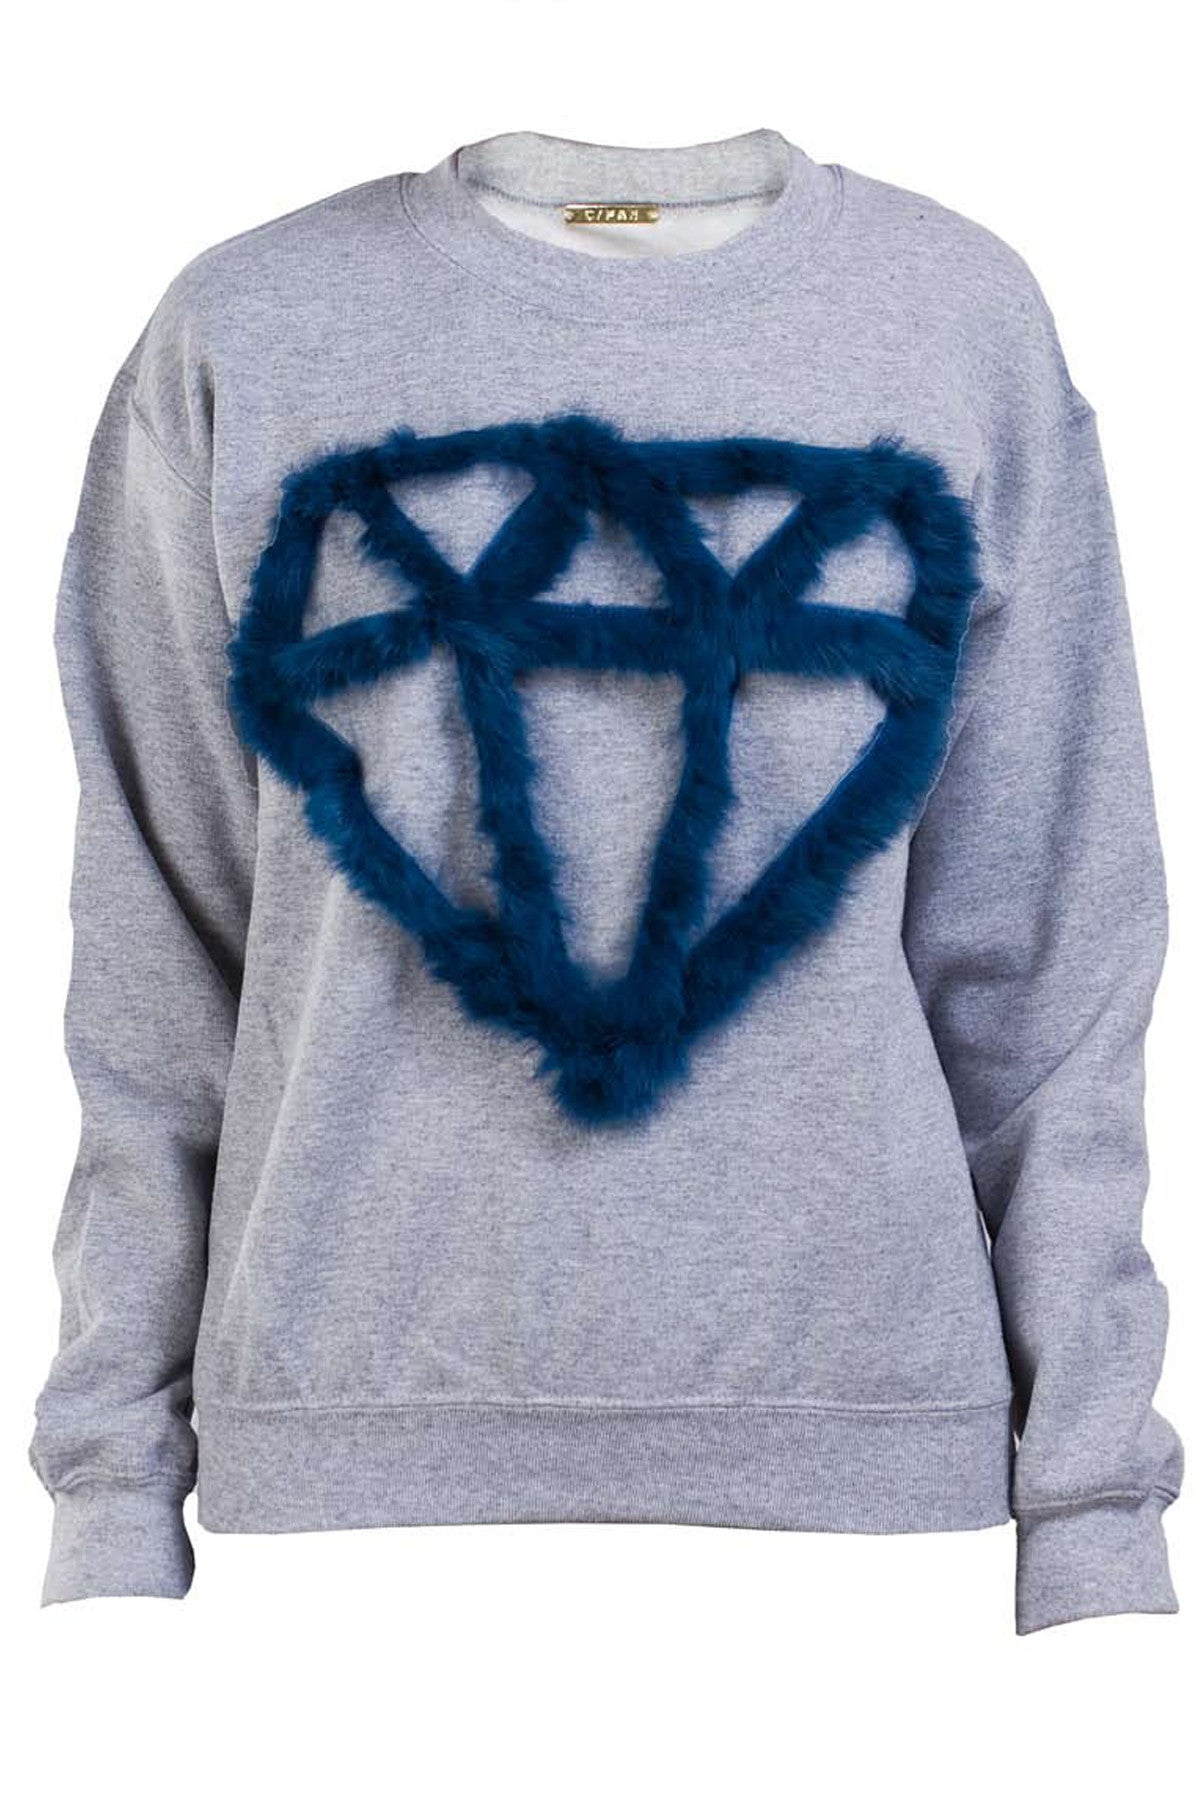 SHINE BRIGHT SWEATSHIRT- GREY/INK BLUE